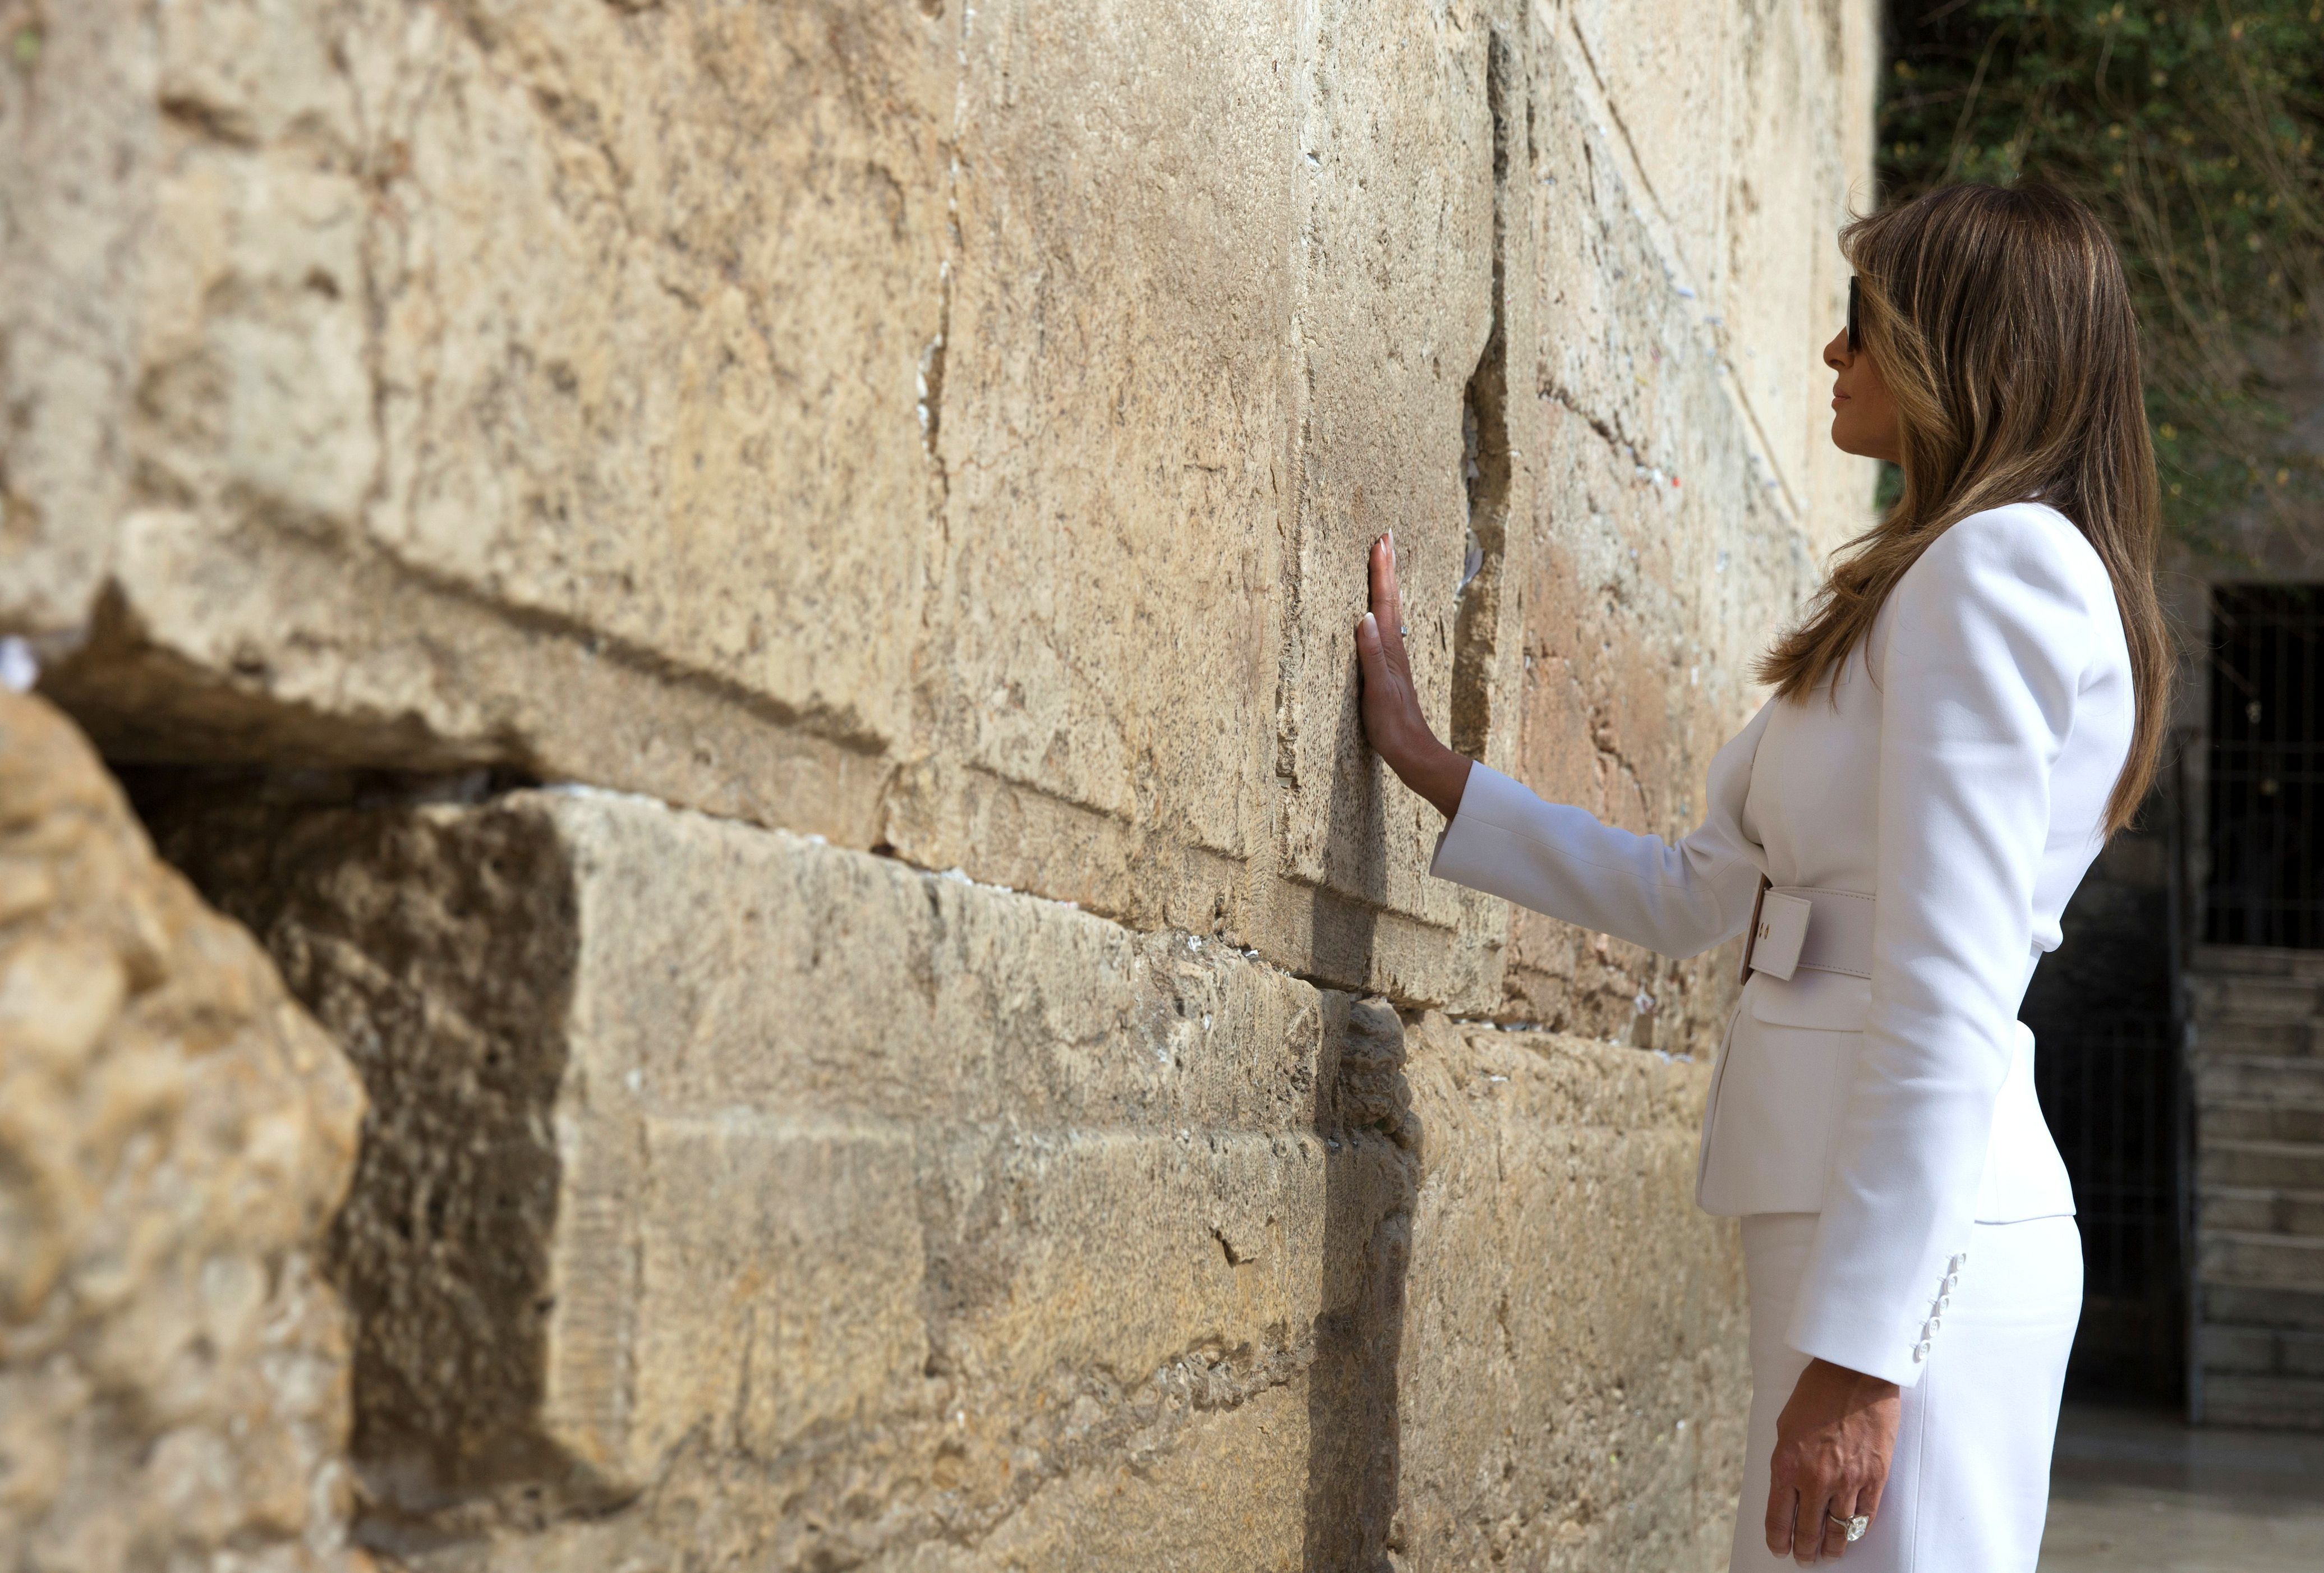 Trump's Twitter page commemorates his visit to the Western Wall